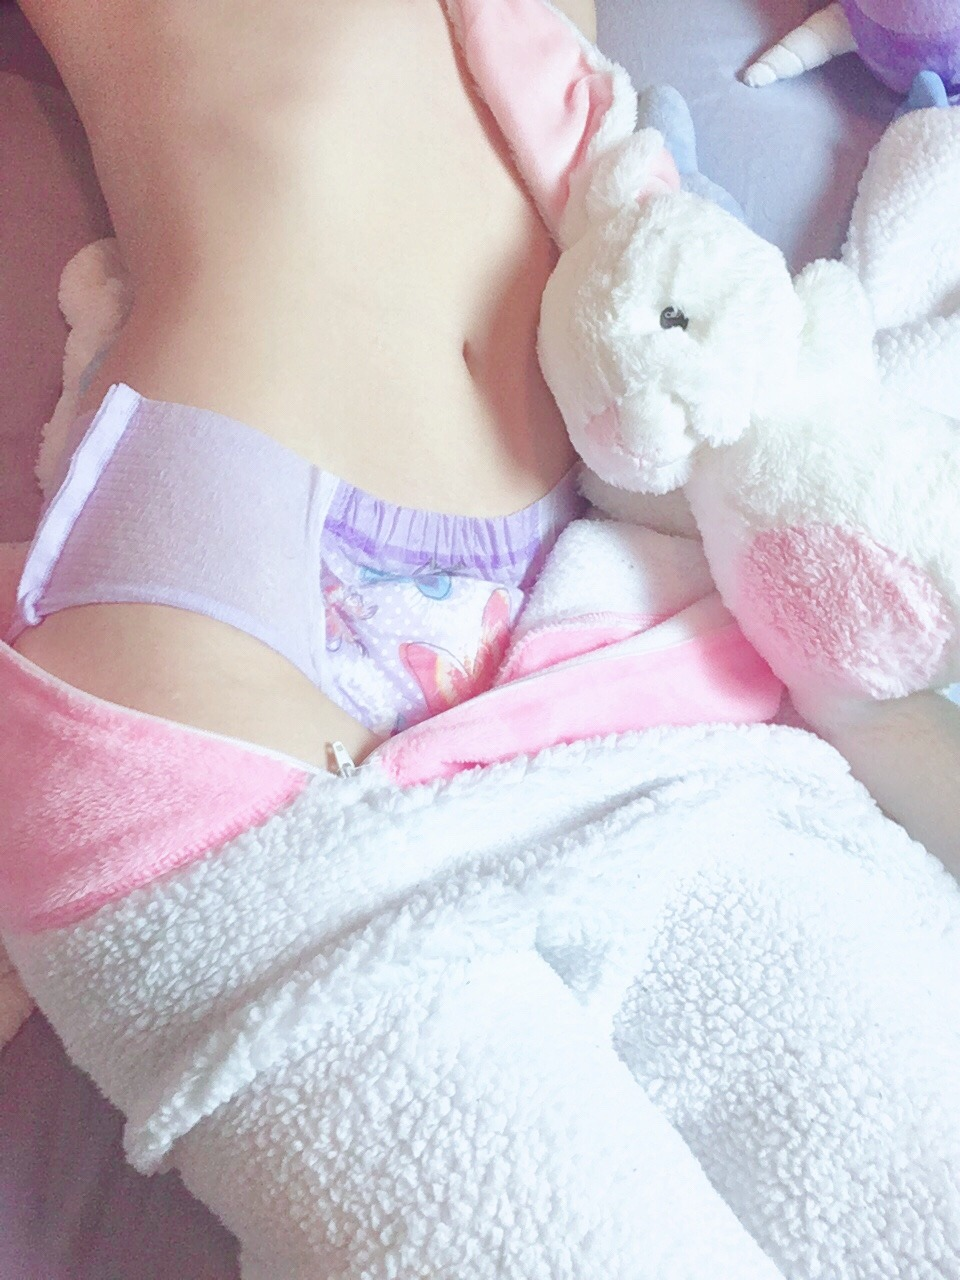 yyp dripping wet cameltoe soaked panties